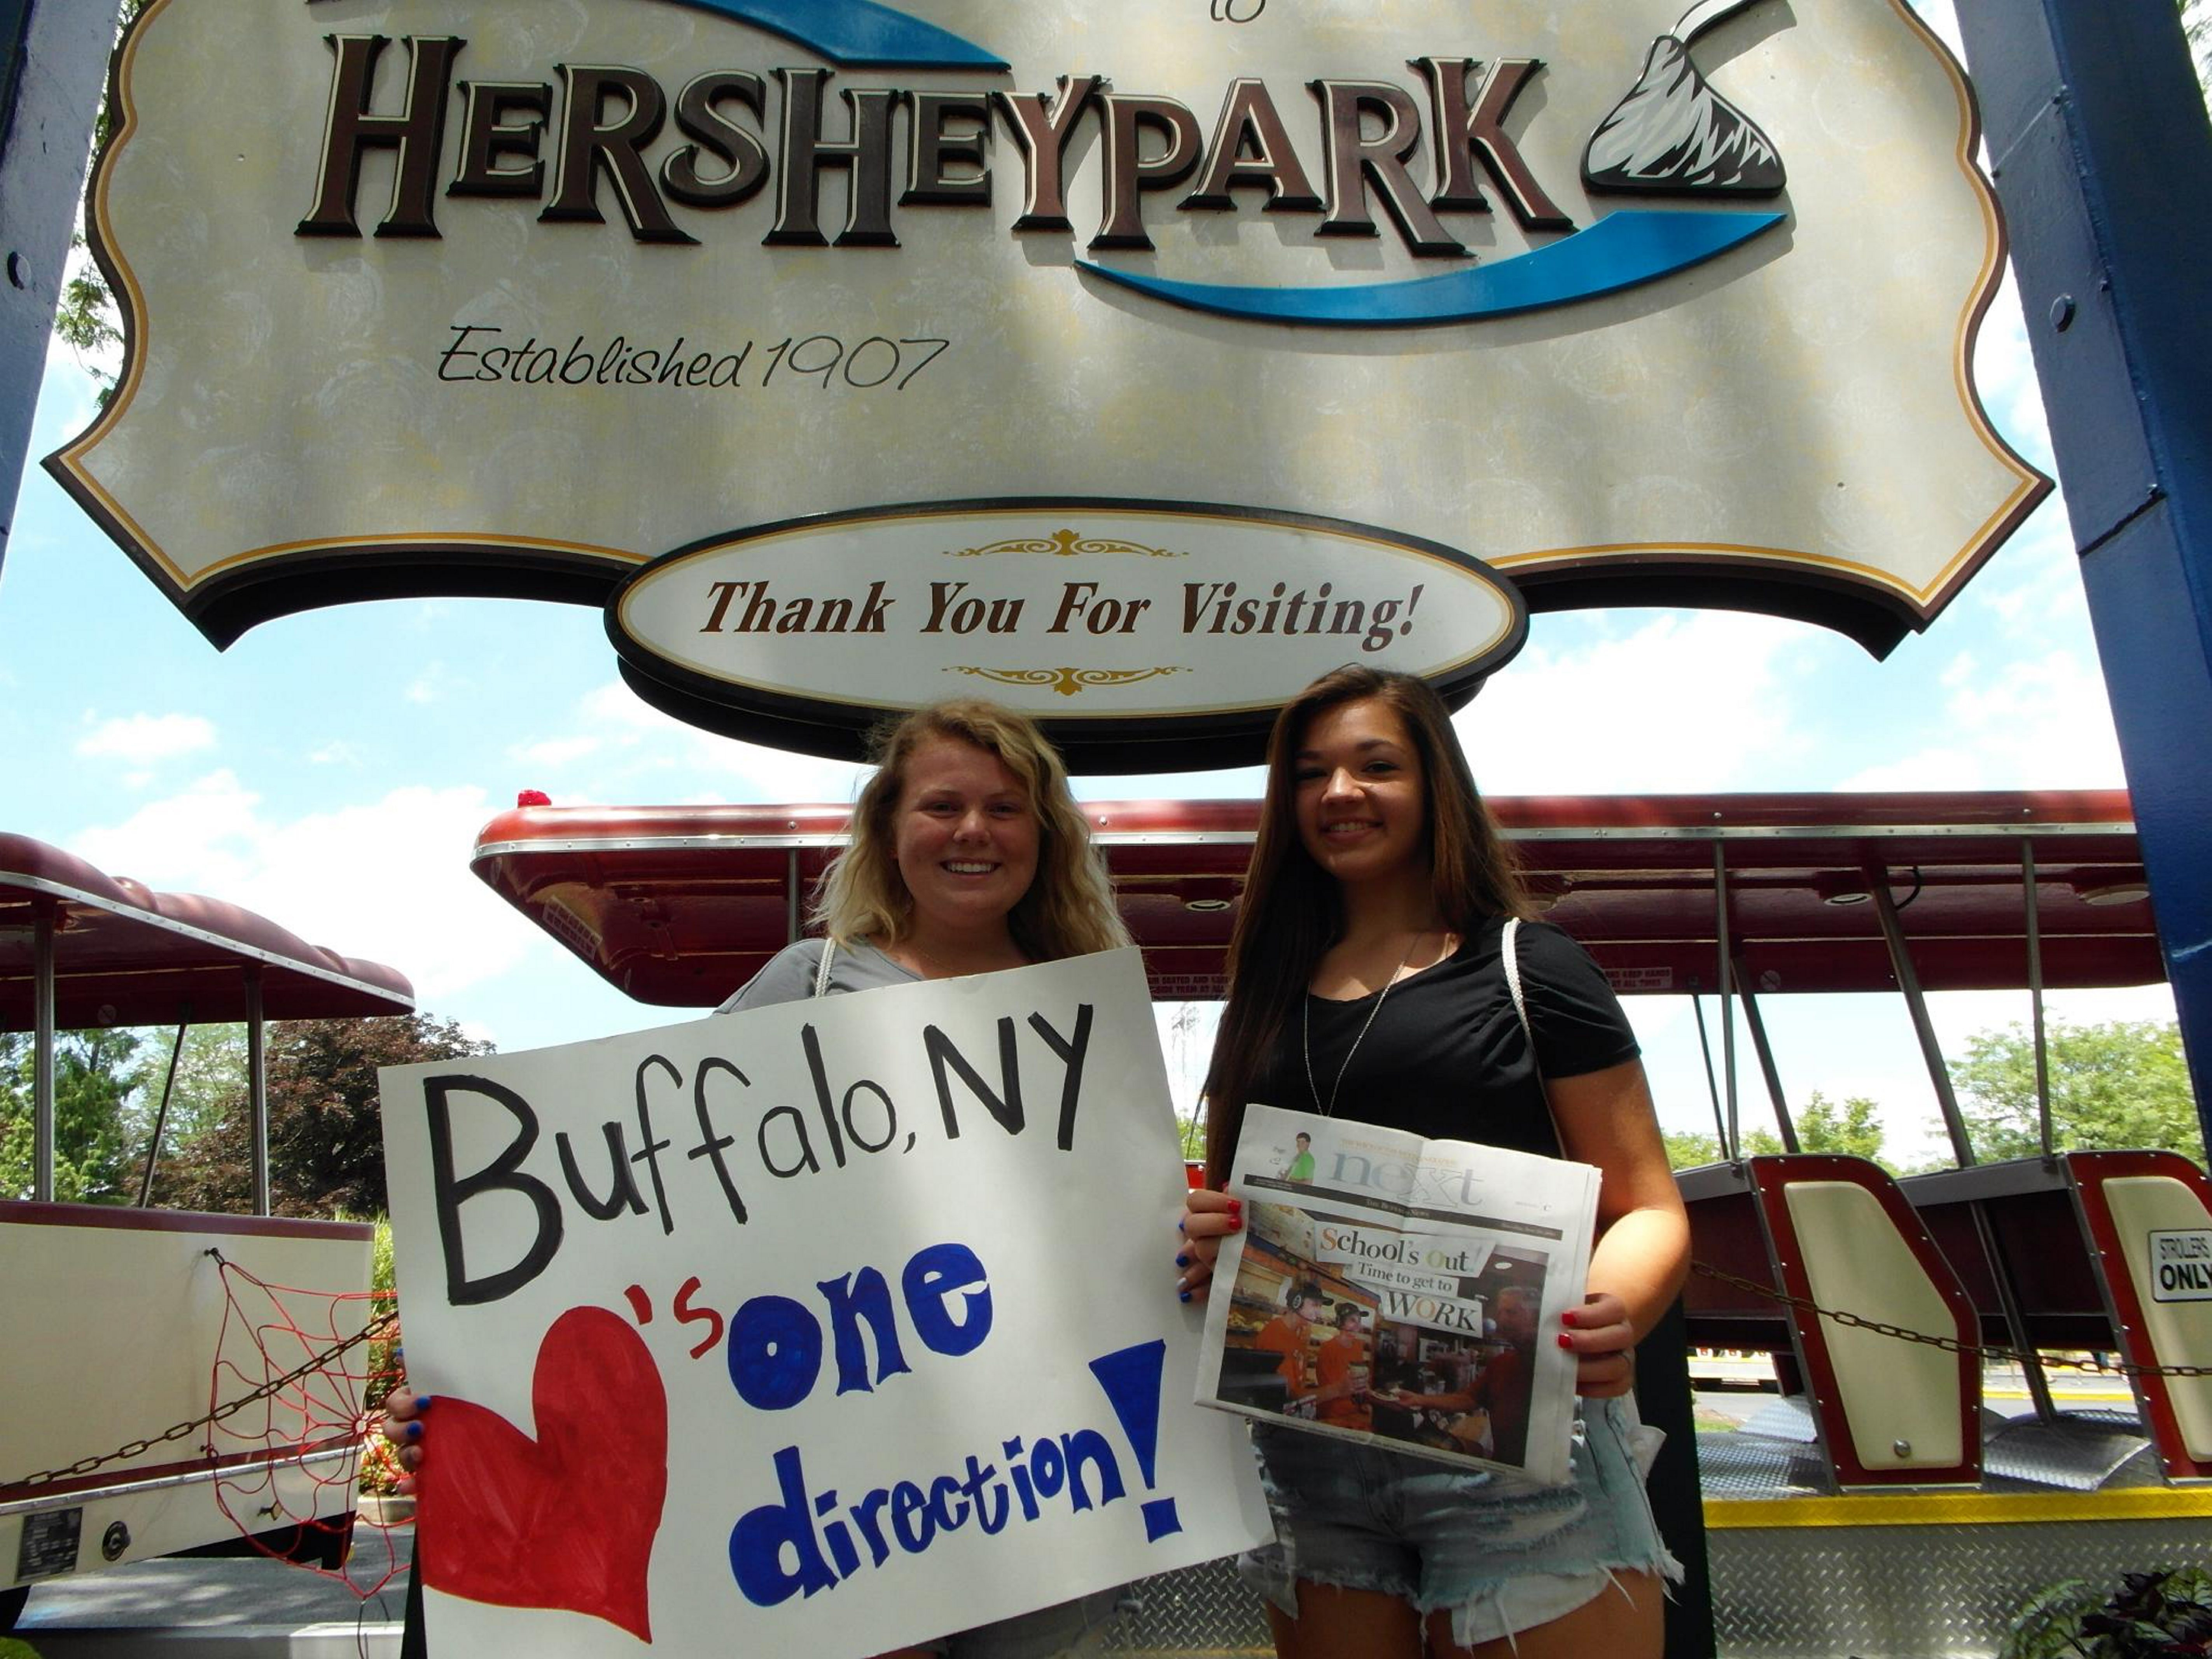 Sweet spot: Starpoint High School students Brianna Brenon, 16, left, and Jenna Dashnaw, 17, took NeXt with them to Hersheypark in Hershey, Pa., in July to see One Direction in concert. The girls also met the boys in the band.